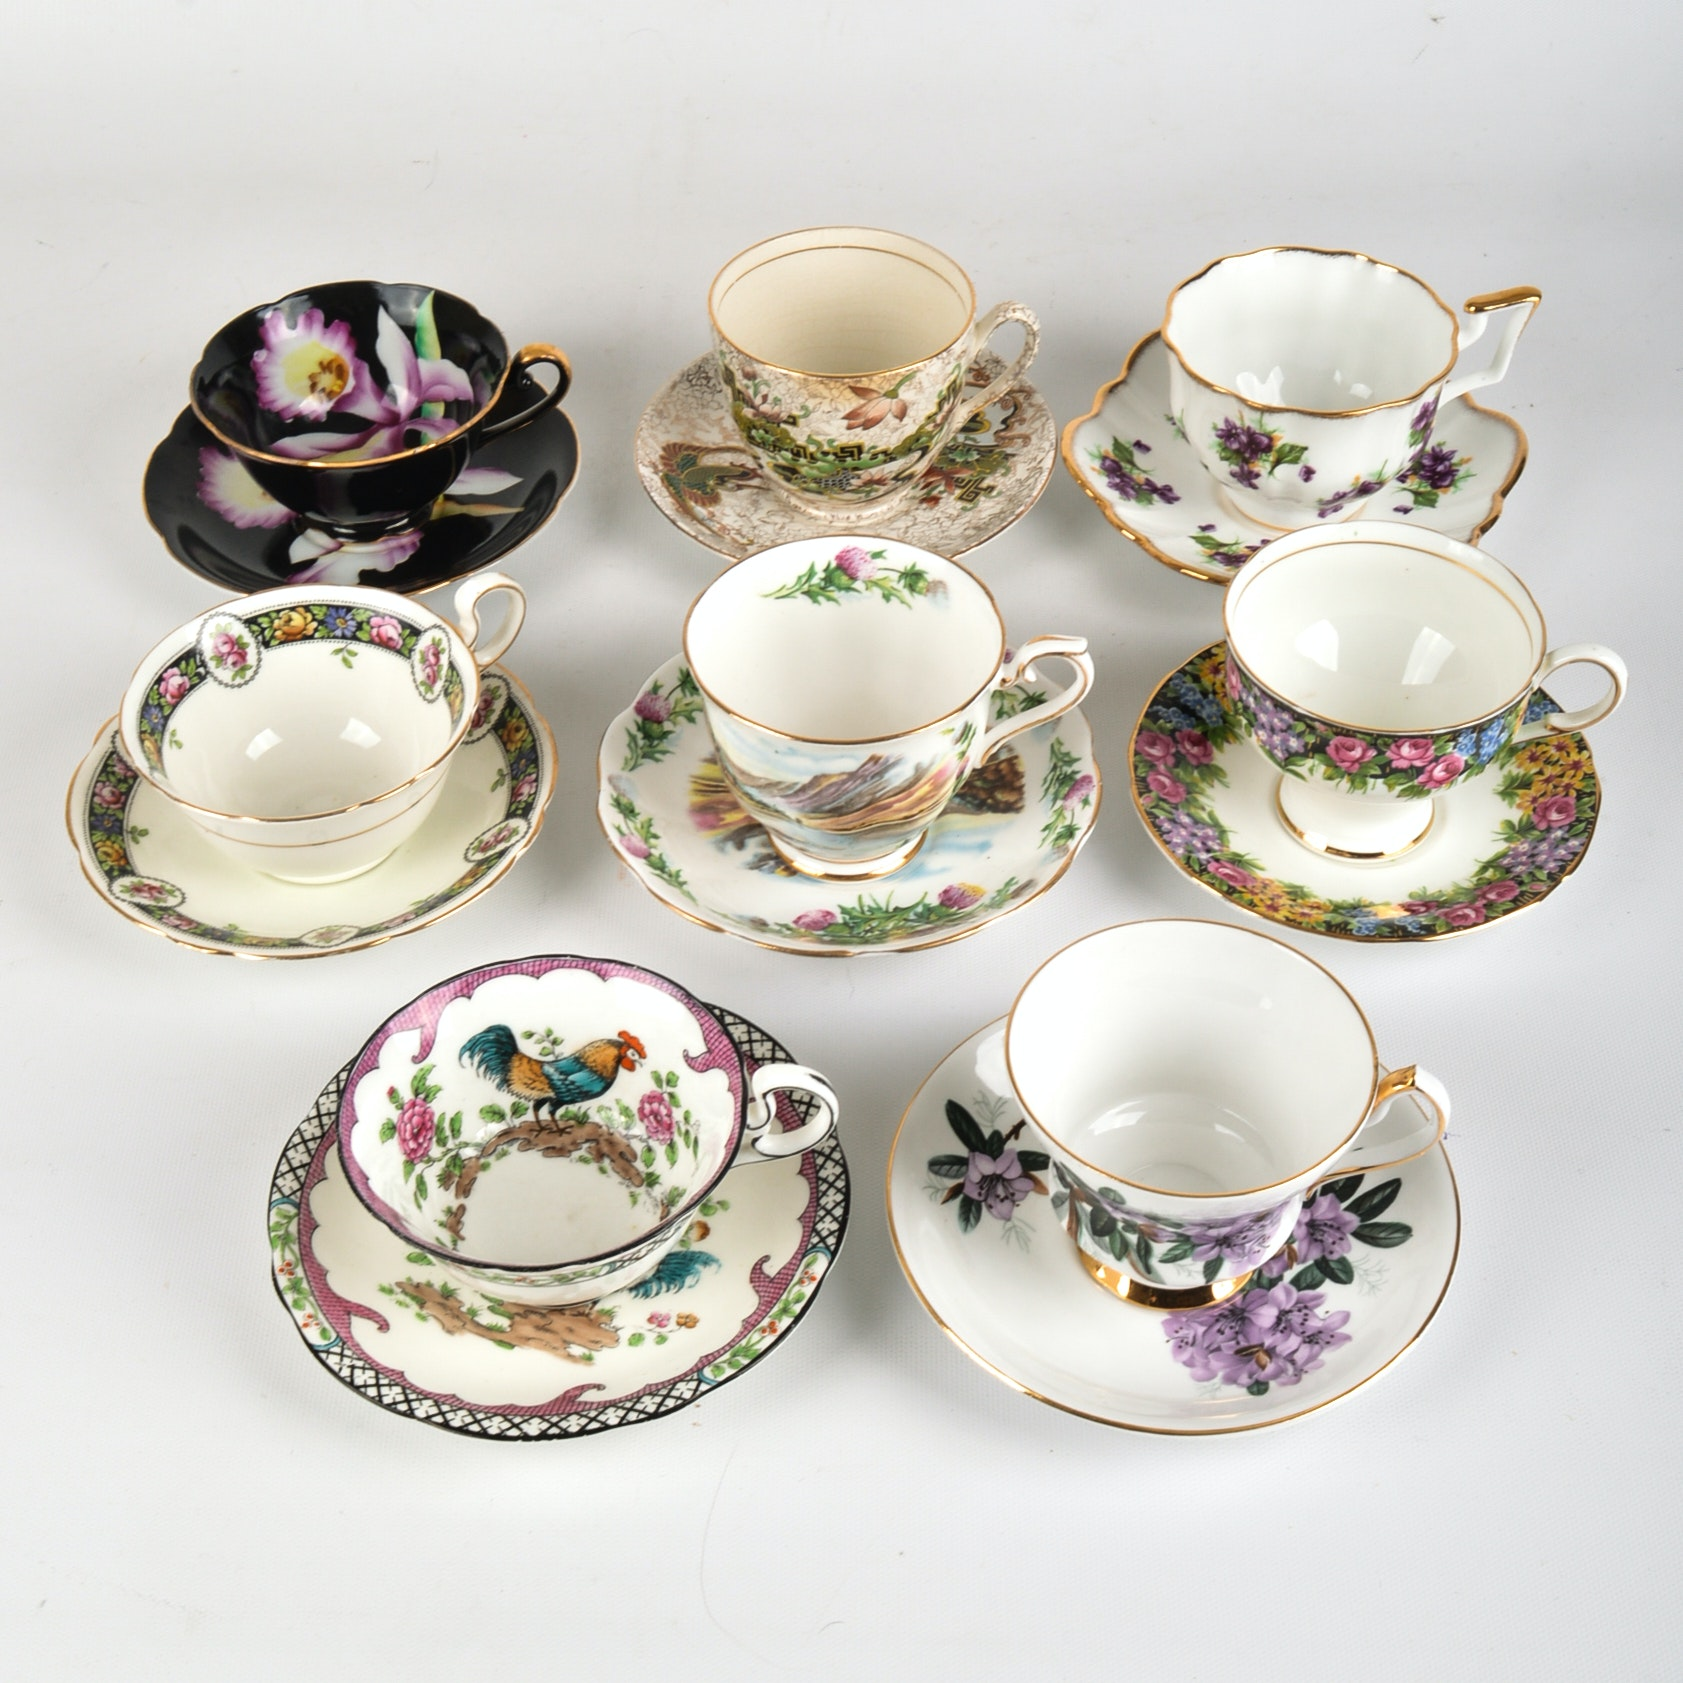 1940s Era English Fine Bone China Teacups and Saucers including Royal Albert